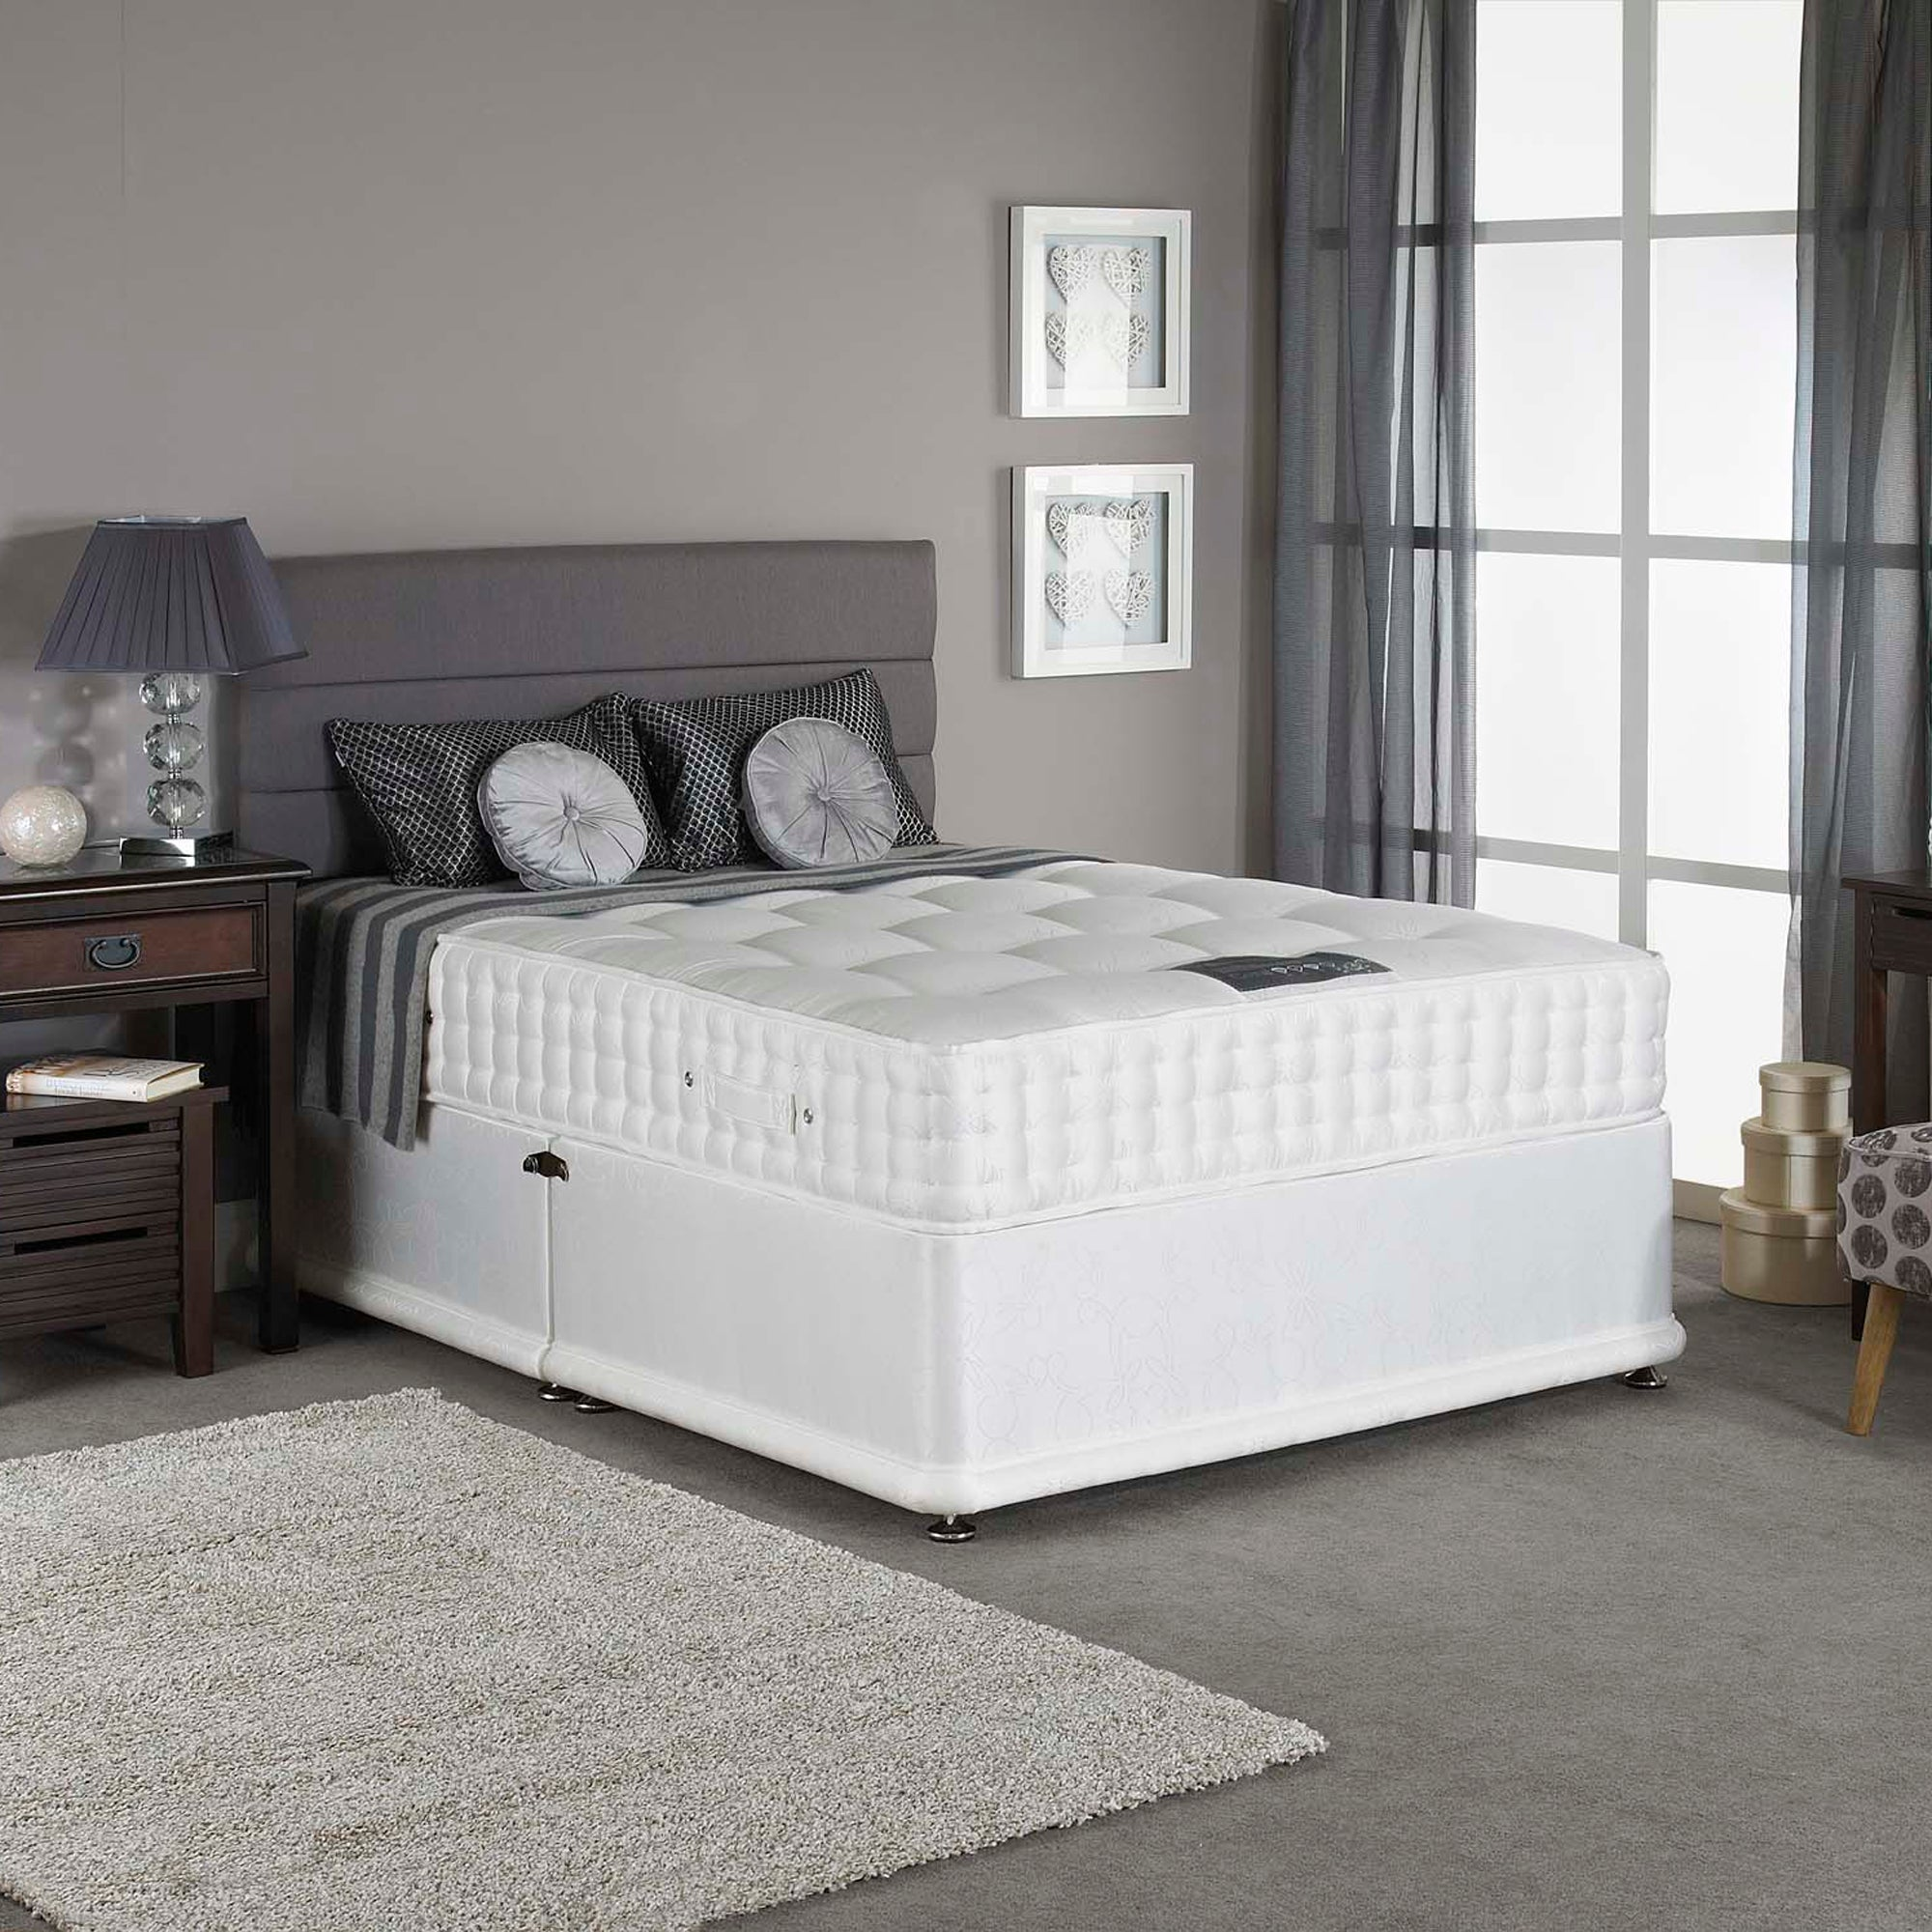 York Sprung Divan Set with 4 Drawers